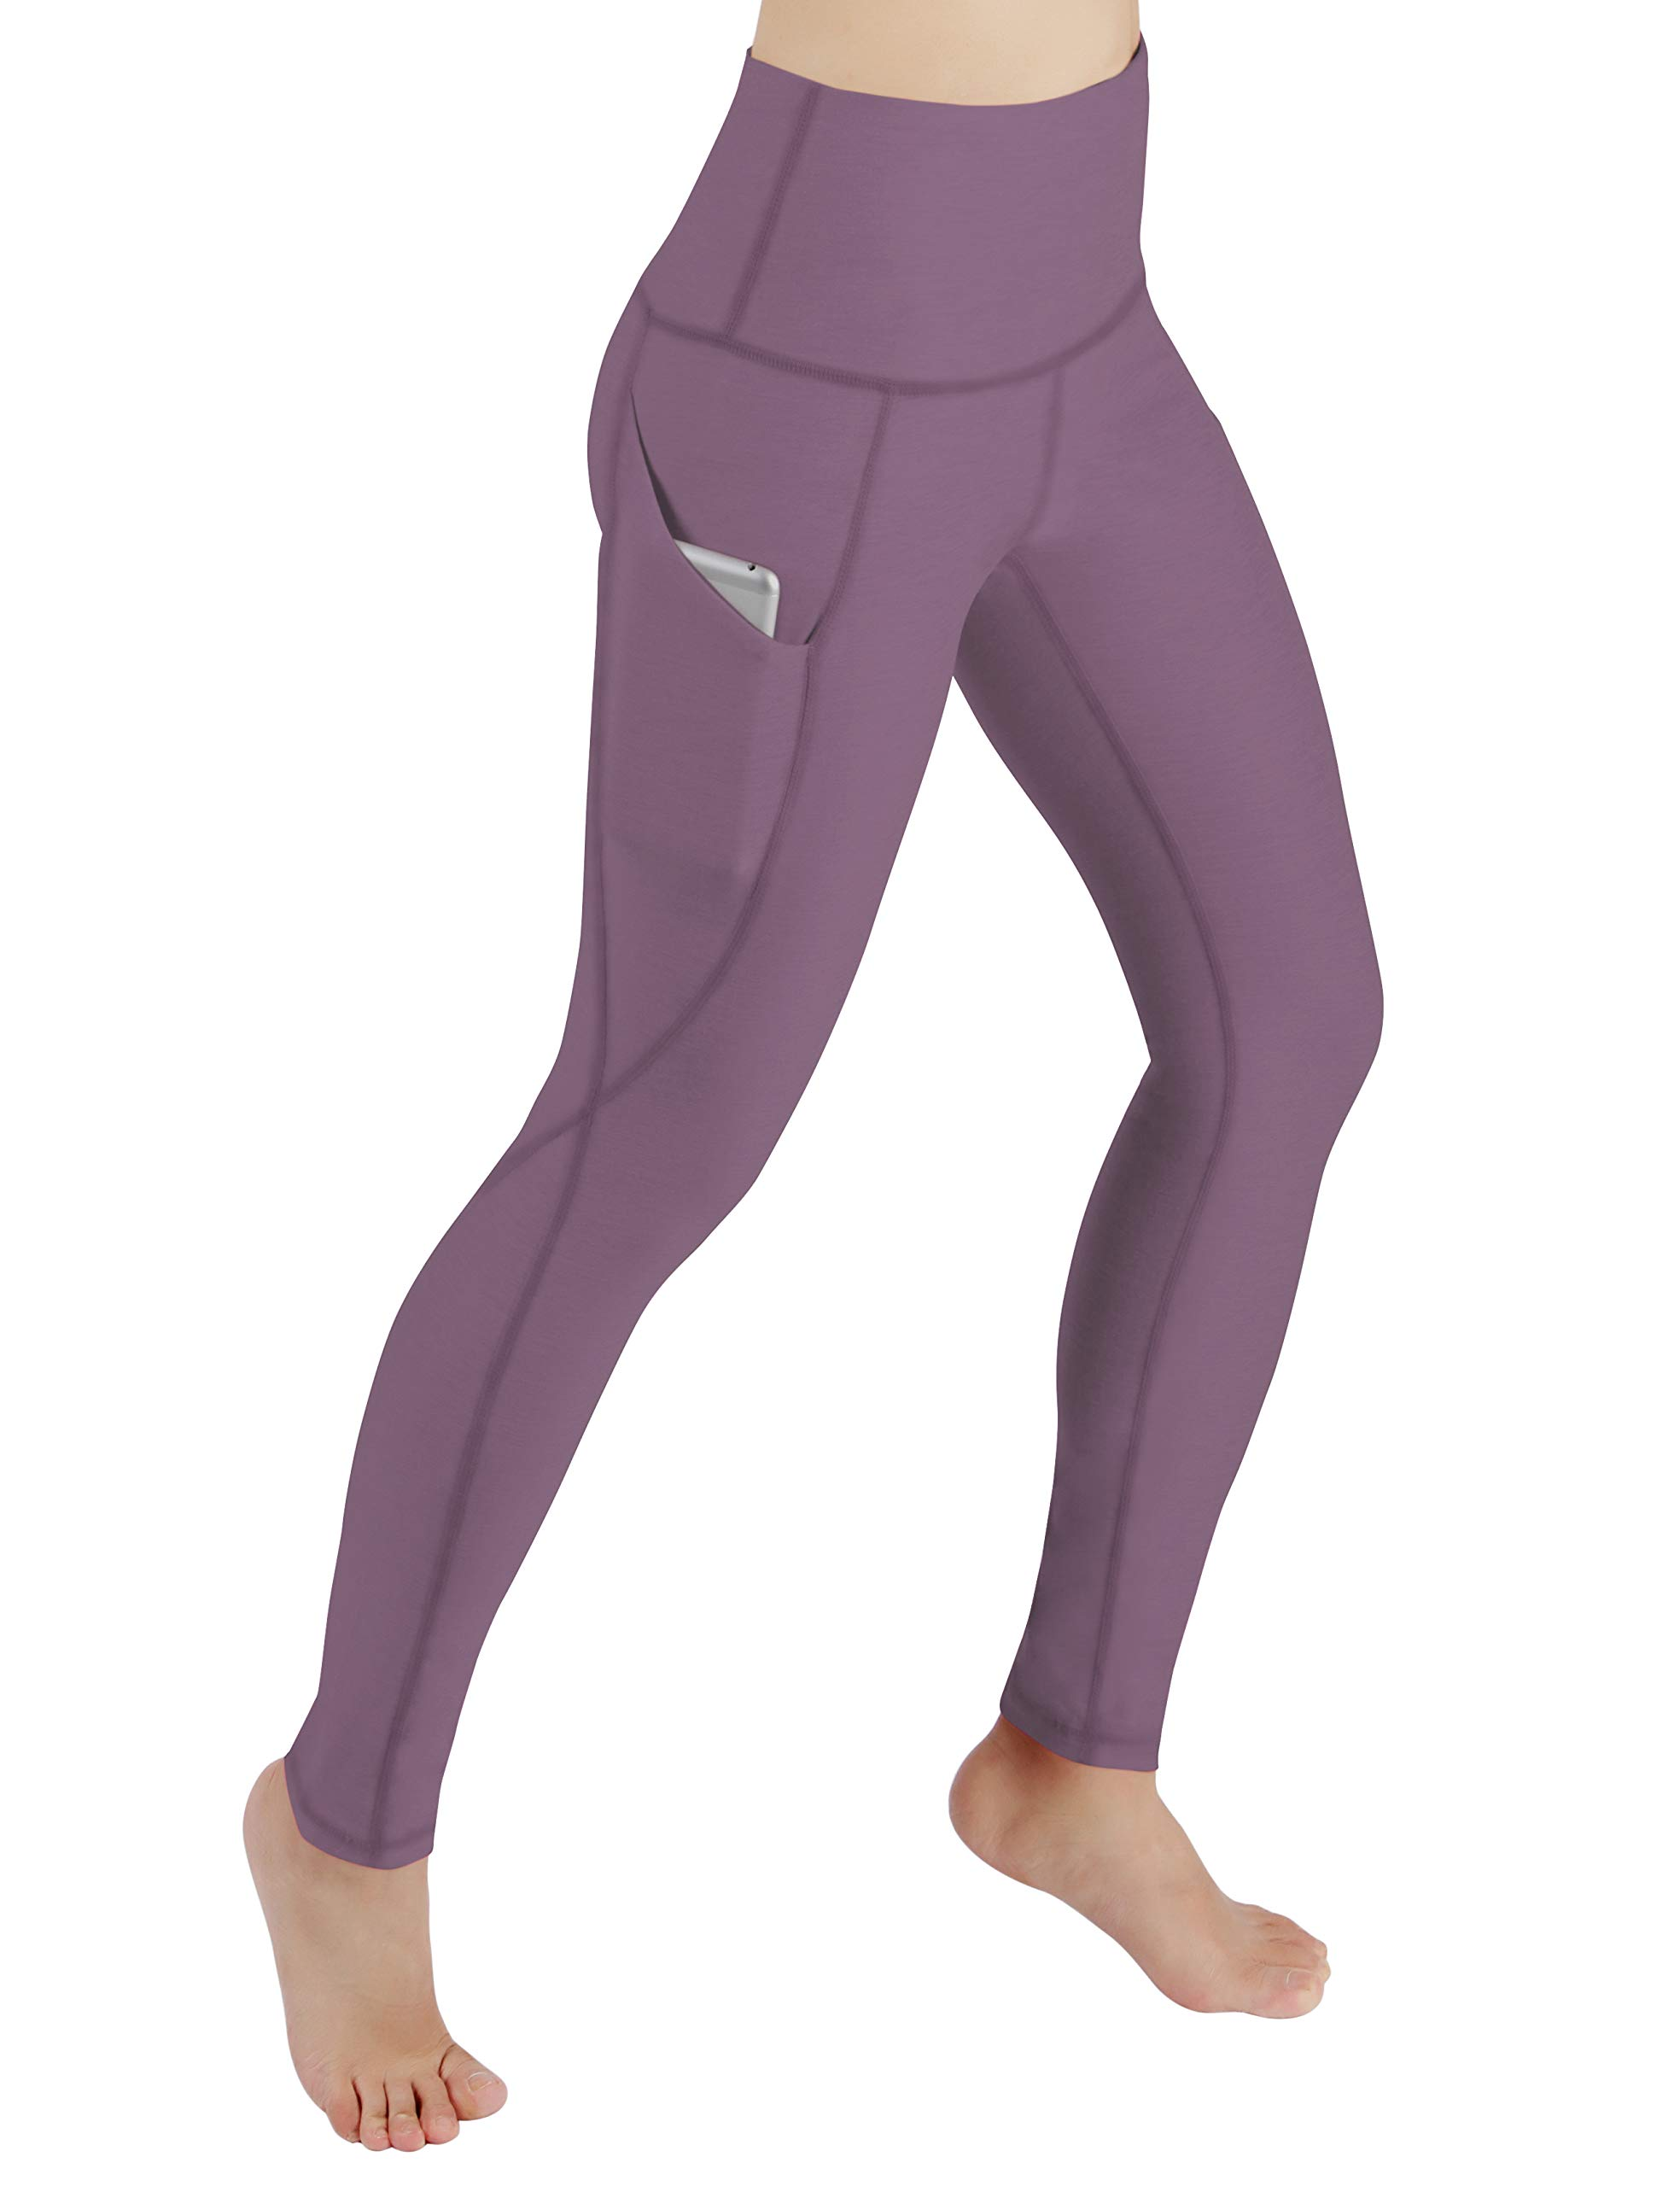 ODODOS Women's High Waist Yoga Pants with Pockets,Tummy Control,Workout Pants Running 4 Way Stretch Yoga Leggings with Pockets,Lavender,X-Large by ODODOS